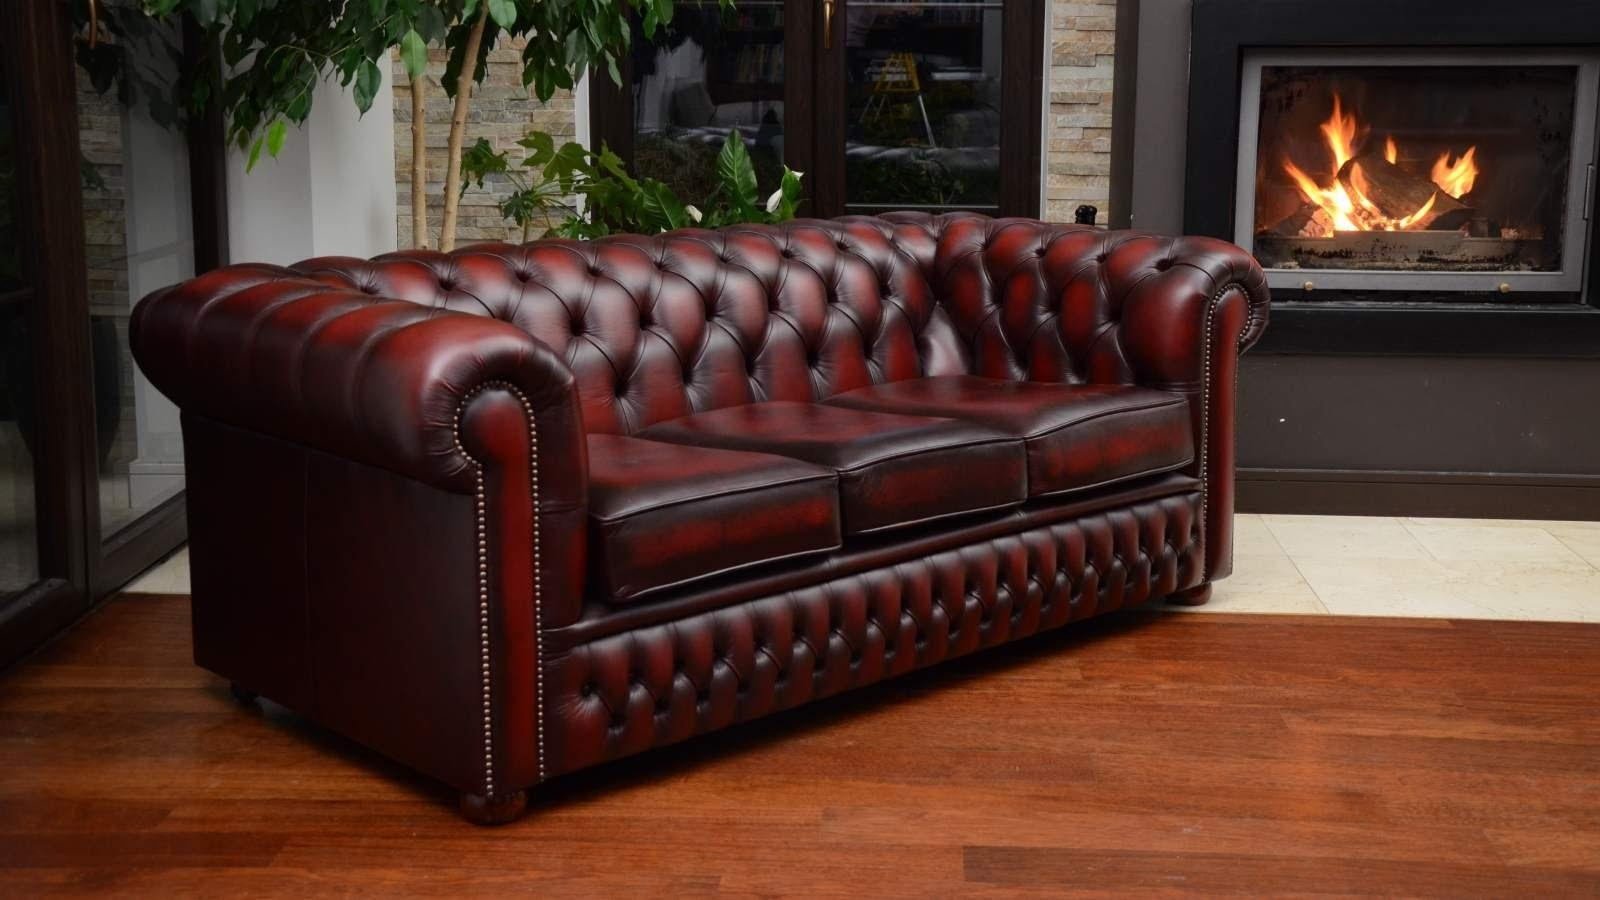 Kanapa Chesterfield 3 Osobowa – 3 Seater Chesterfield Couch – Youtube With Red Leather Chesterfield Chairs (Image 15 of 20)